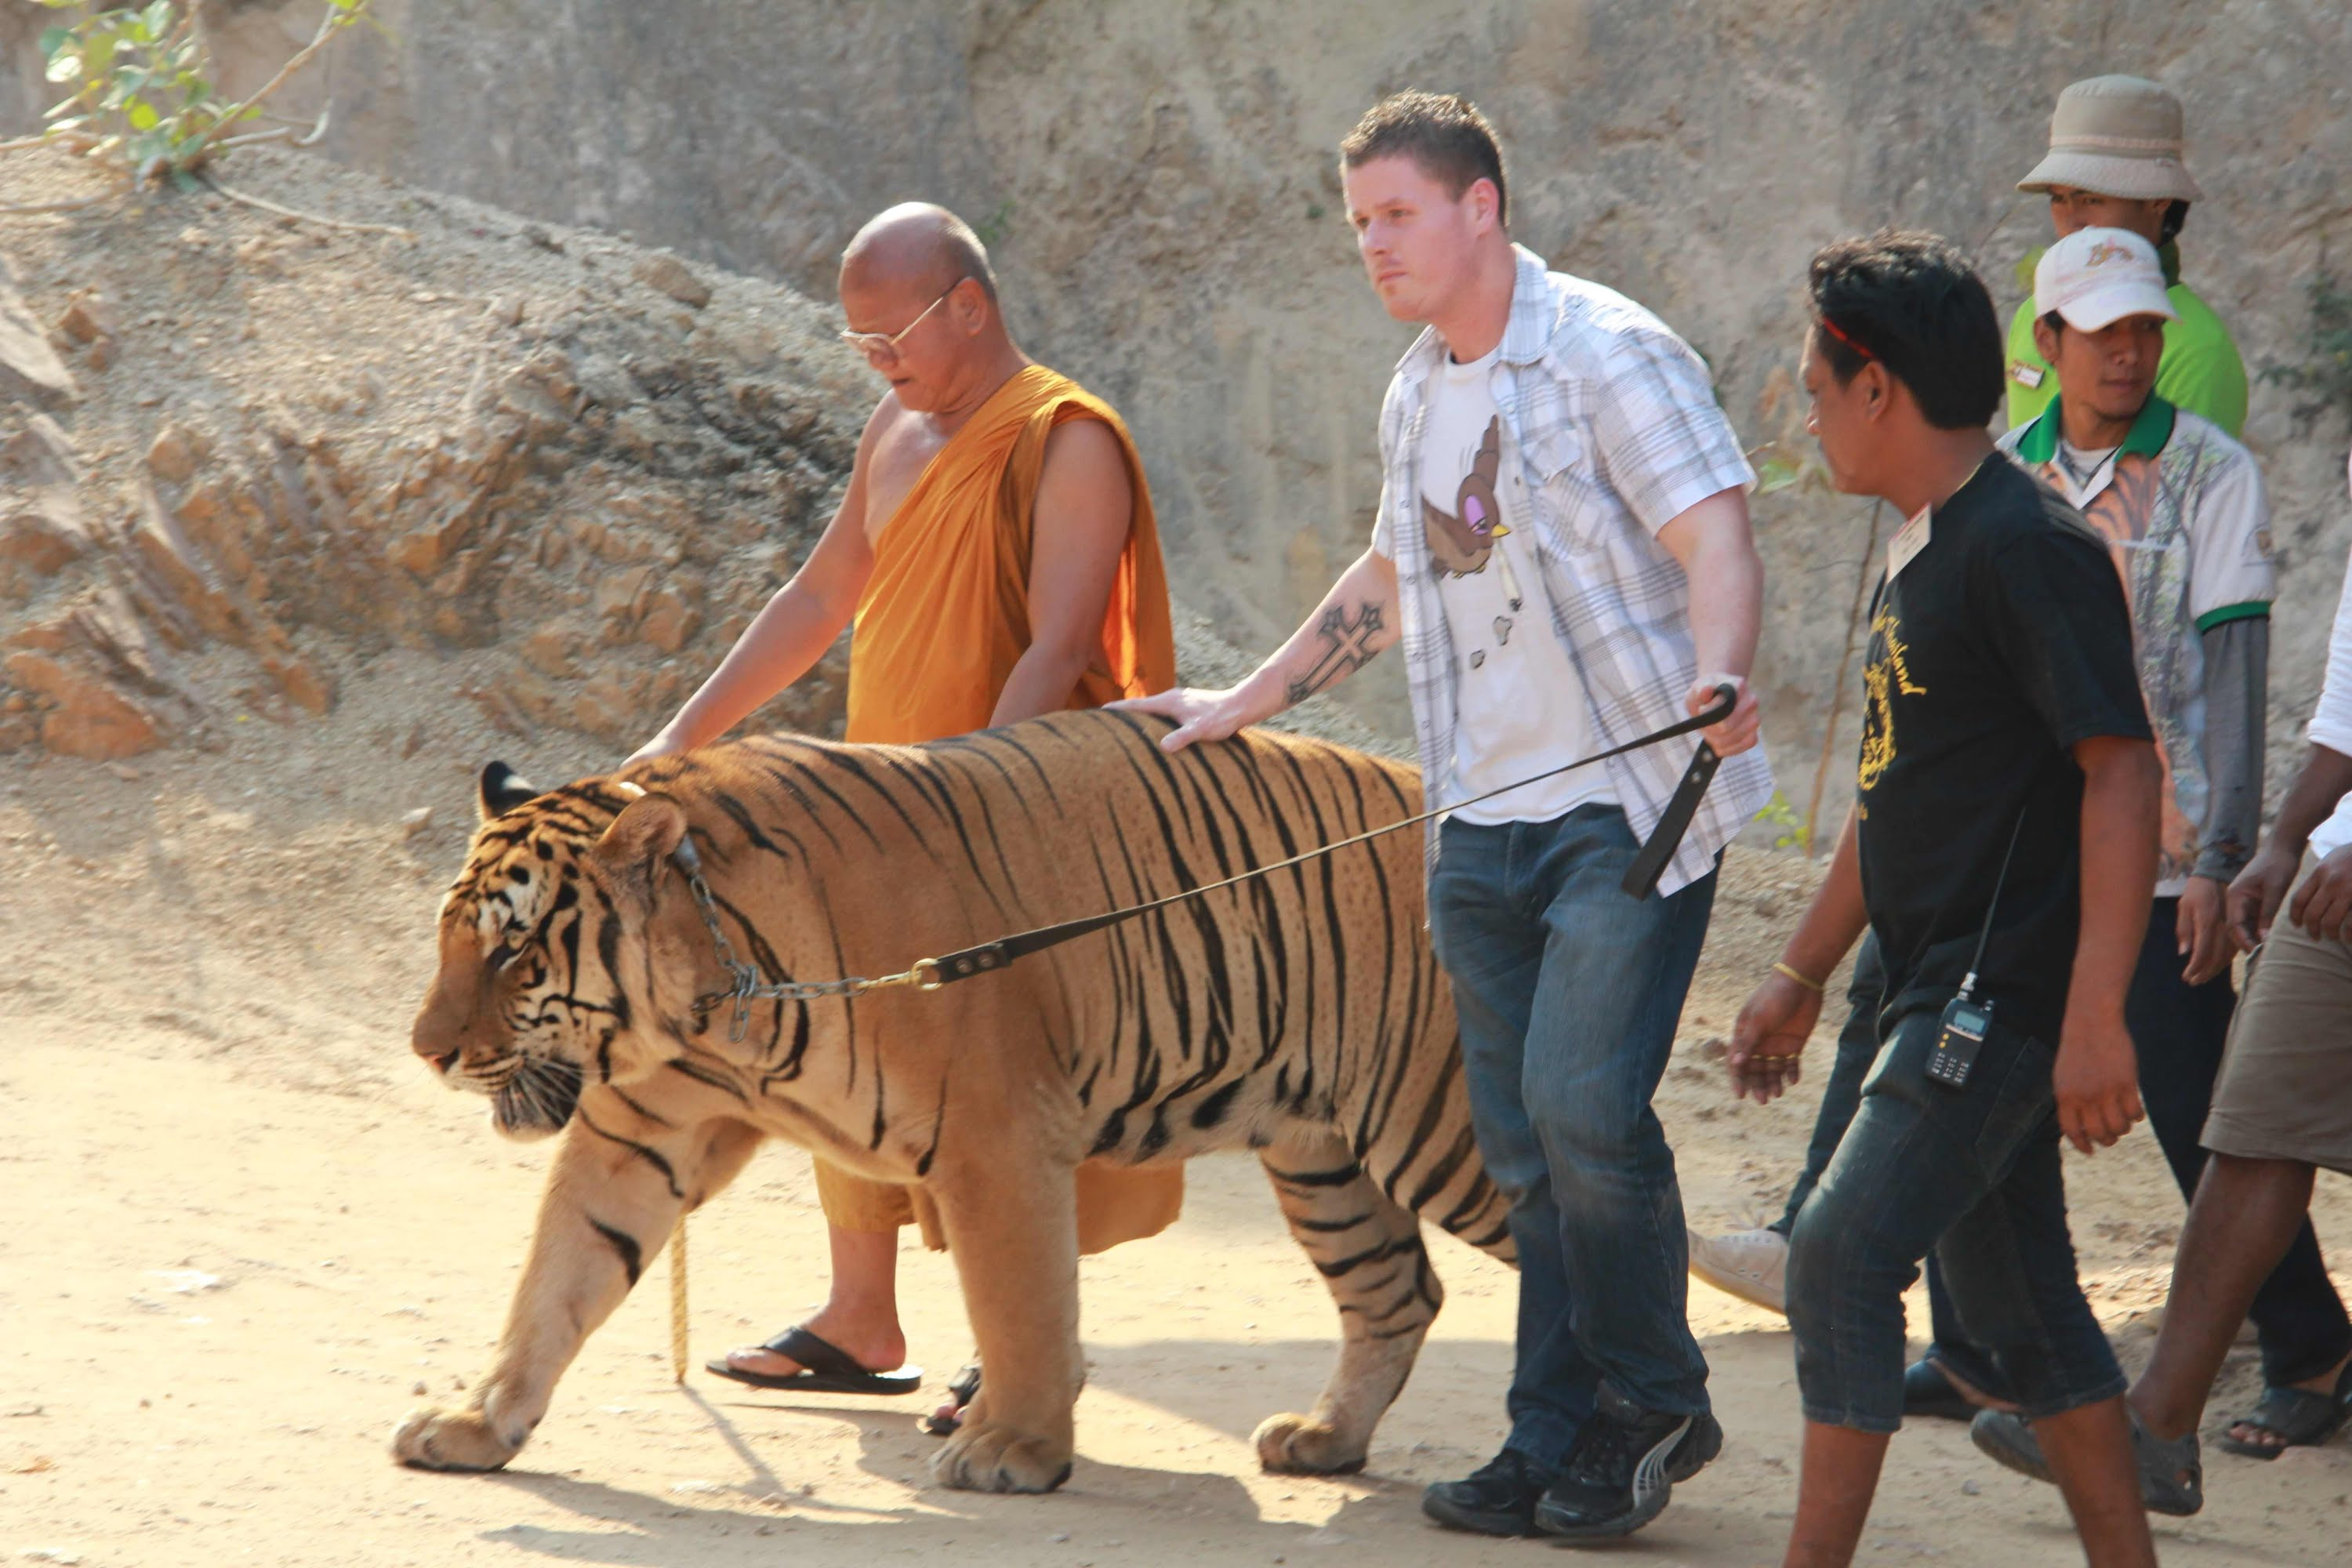 Pity the Tigers: Thailand's infamous 'Tiger Temple' will ...